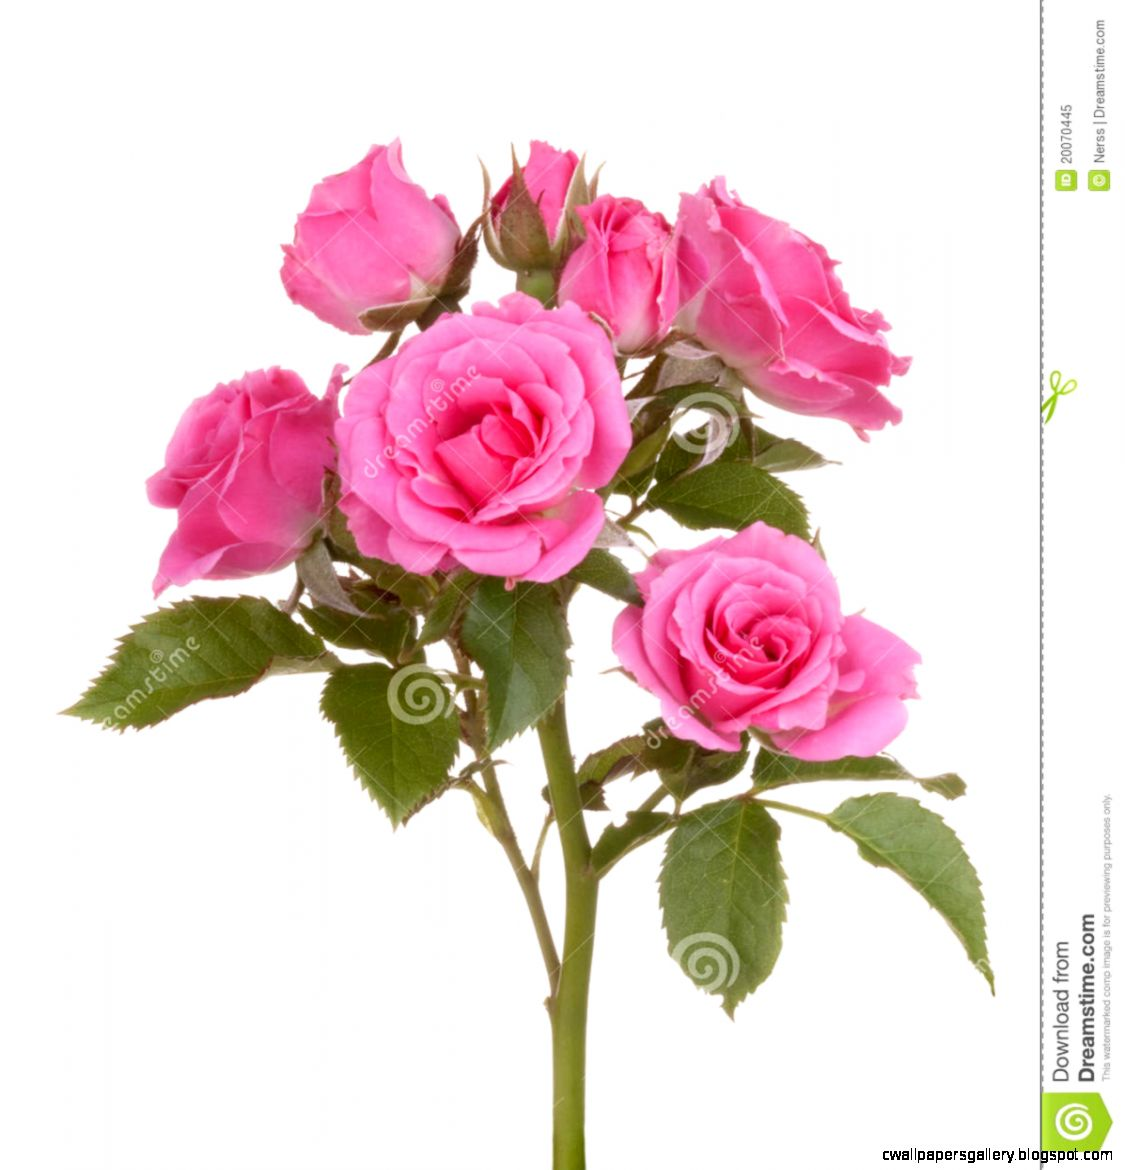 Roses Flowers Pink Rose Flower Royalty Free Stock Photo   Image